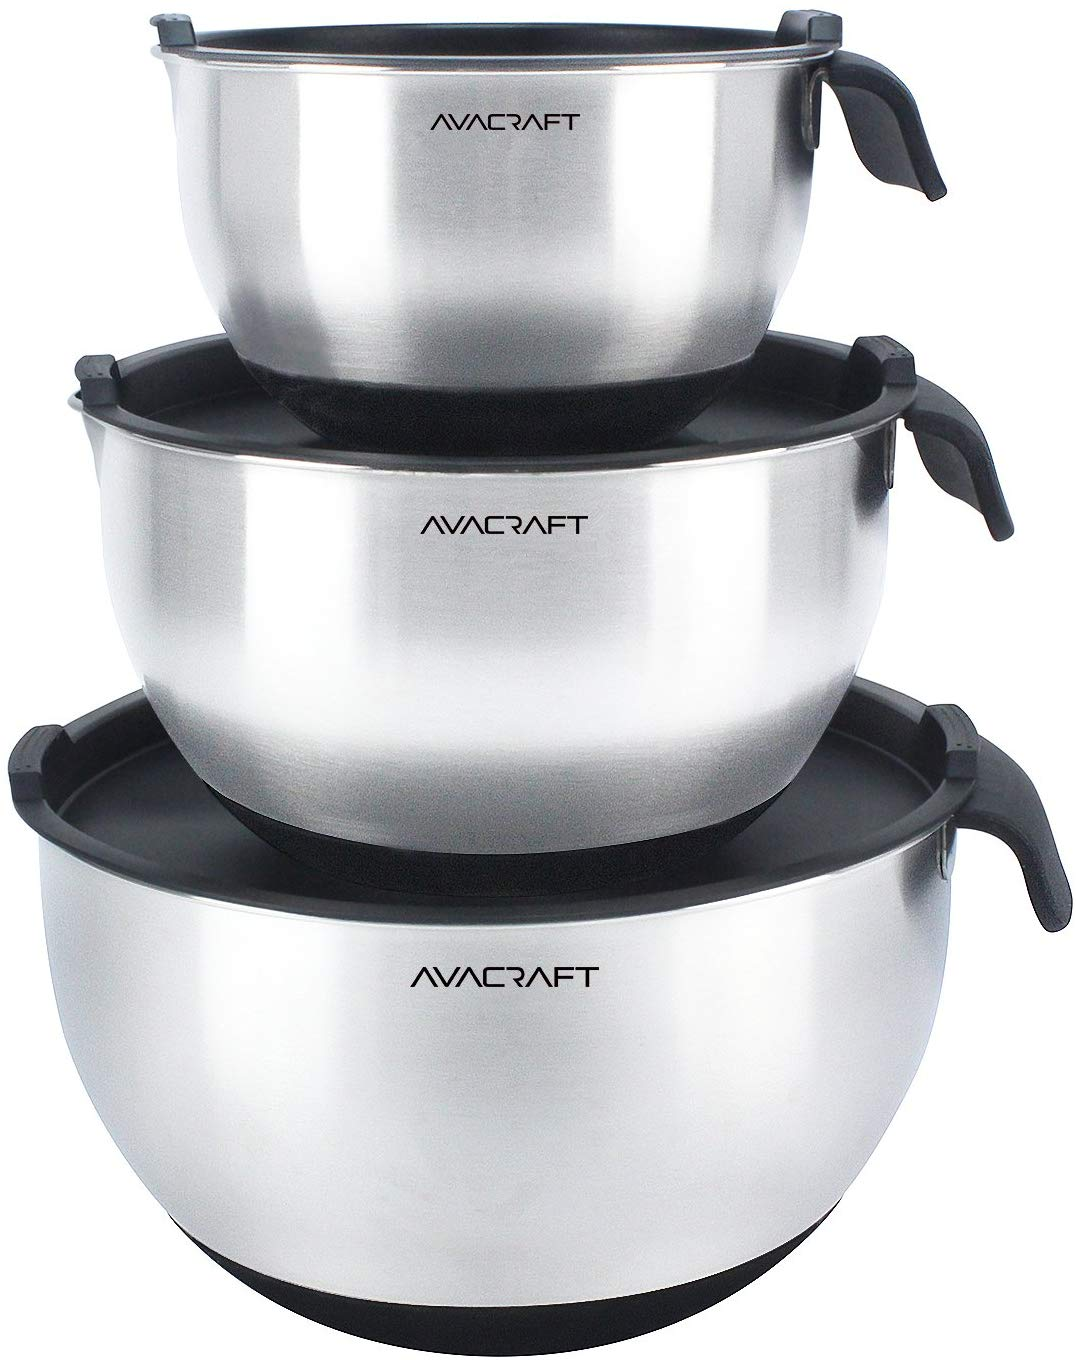 AVACRAFT Nonslip Silicone Base Stainless Steel Mixing Bowl Set, 3-Piece